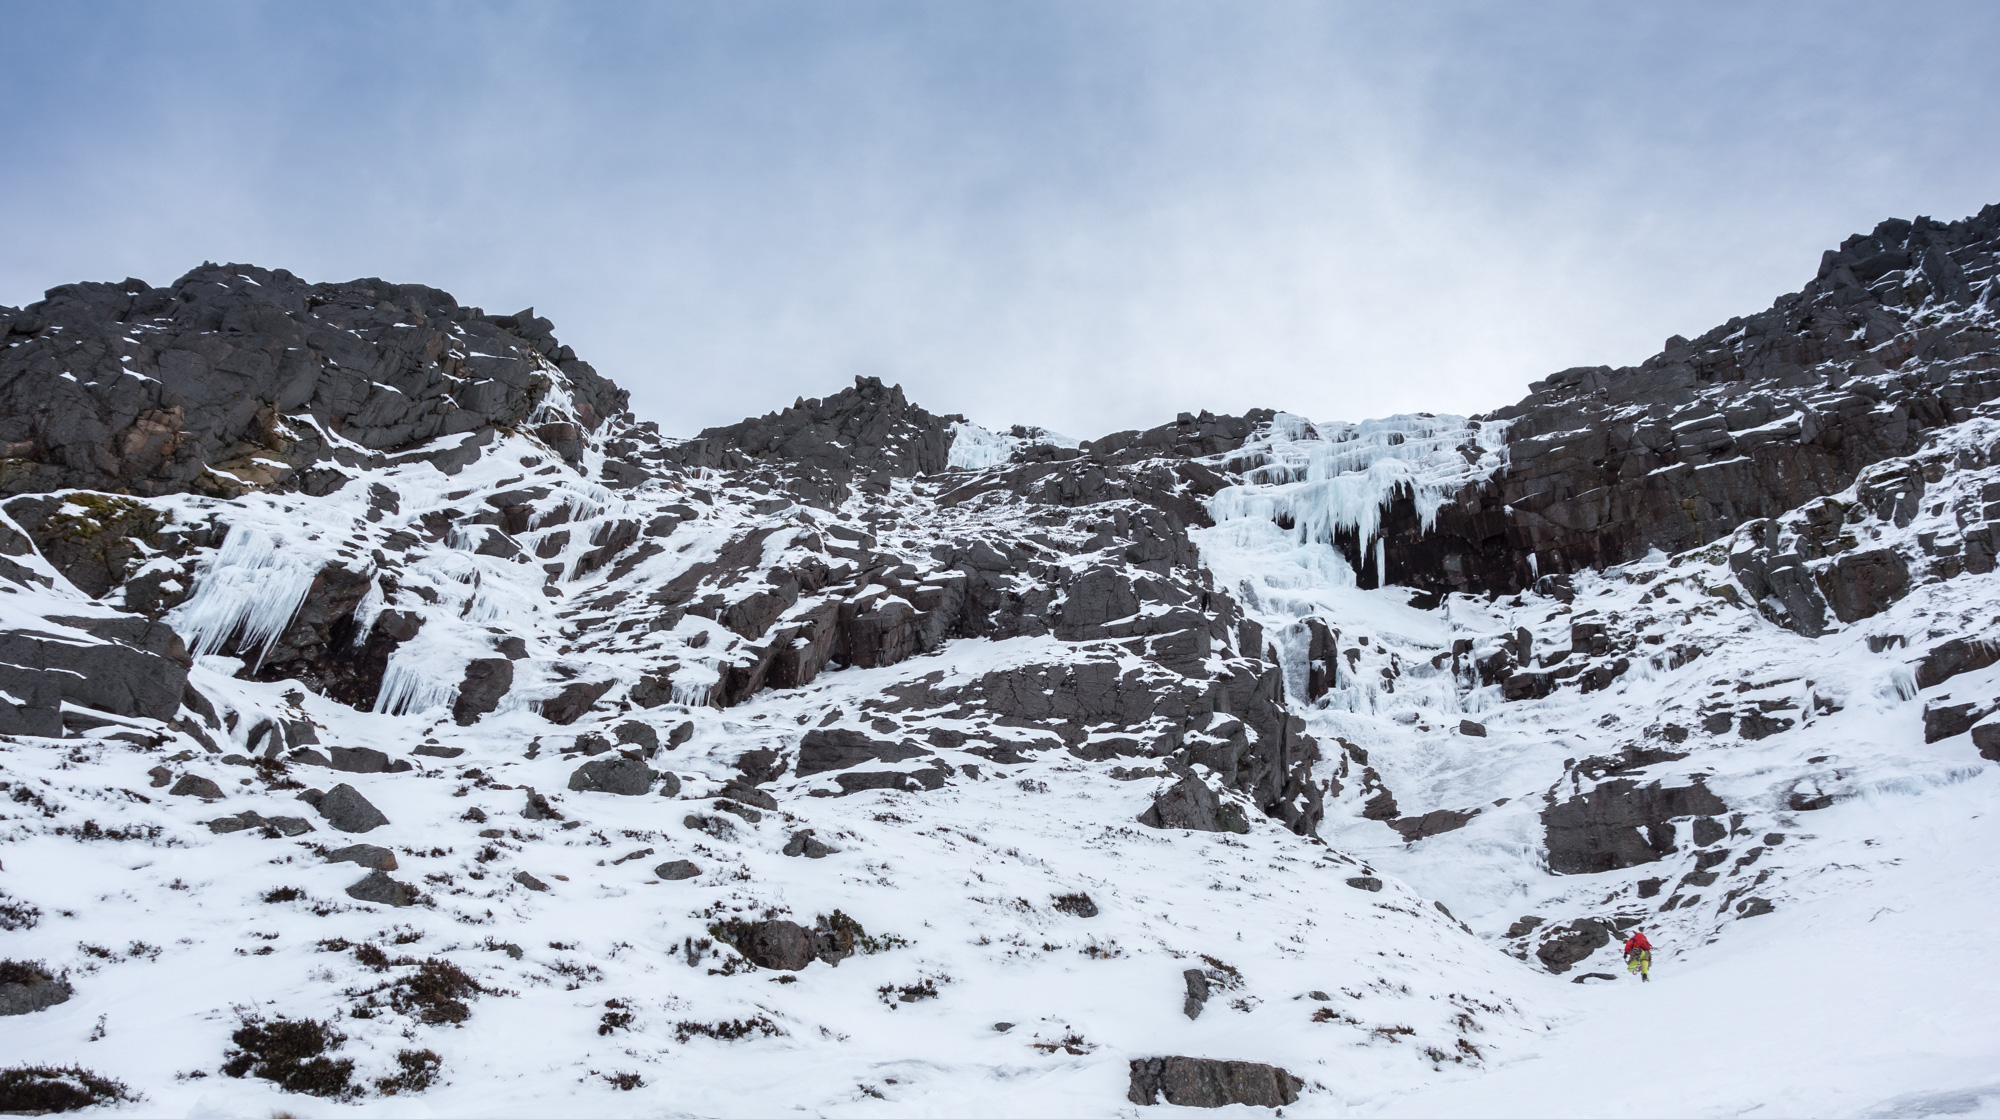 Joe approaching the start of Window Gully. The upper icefall of K9 can just be seen in the centre of the photo.